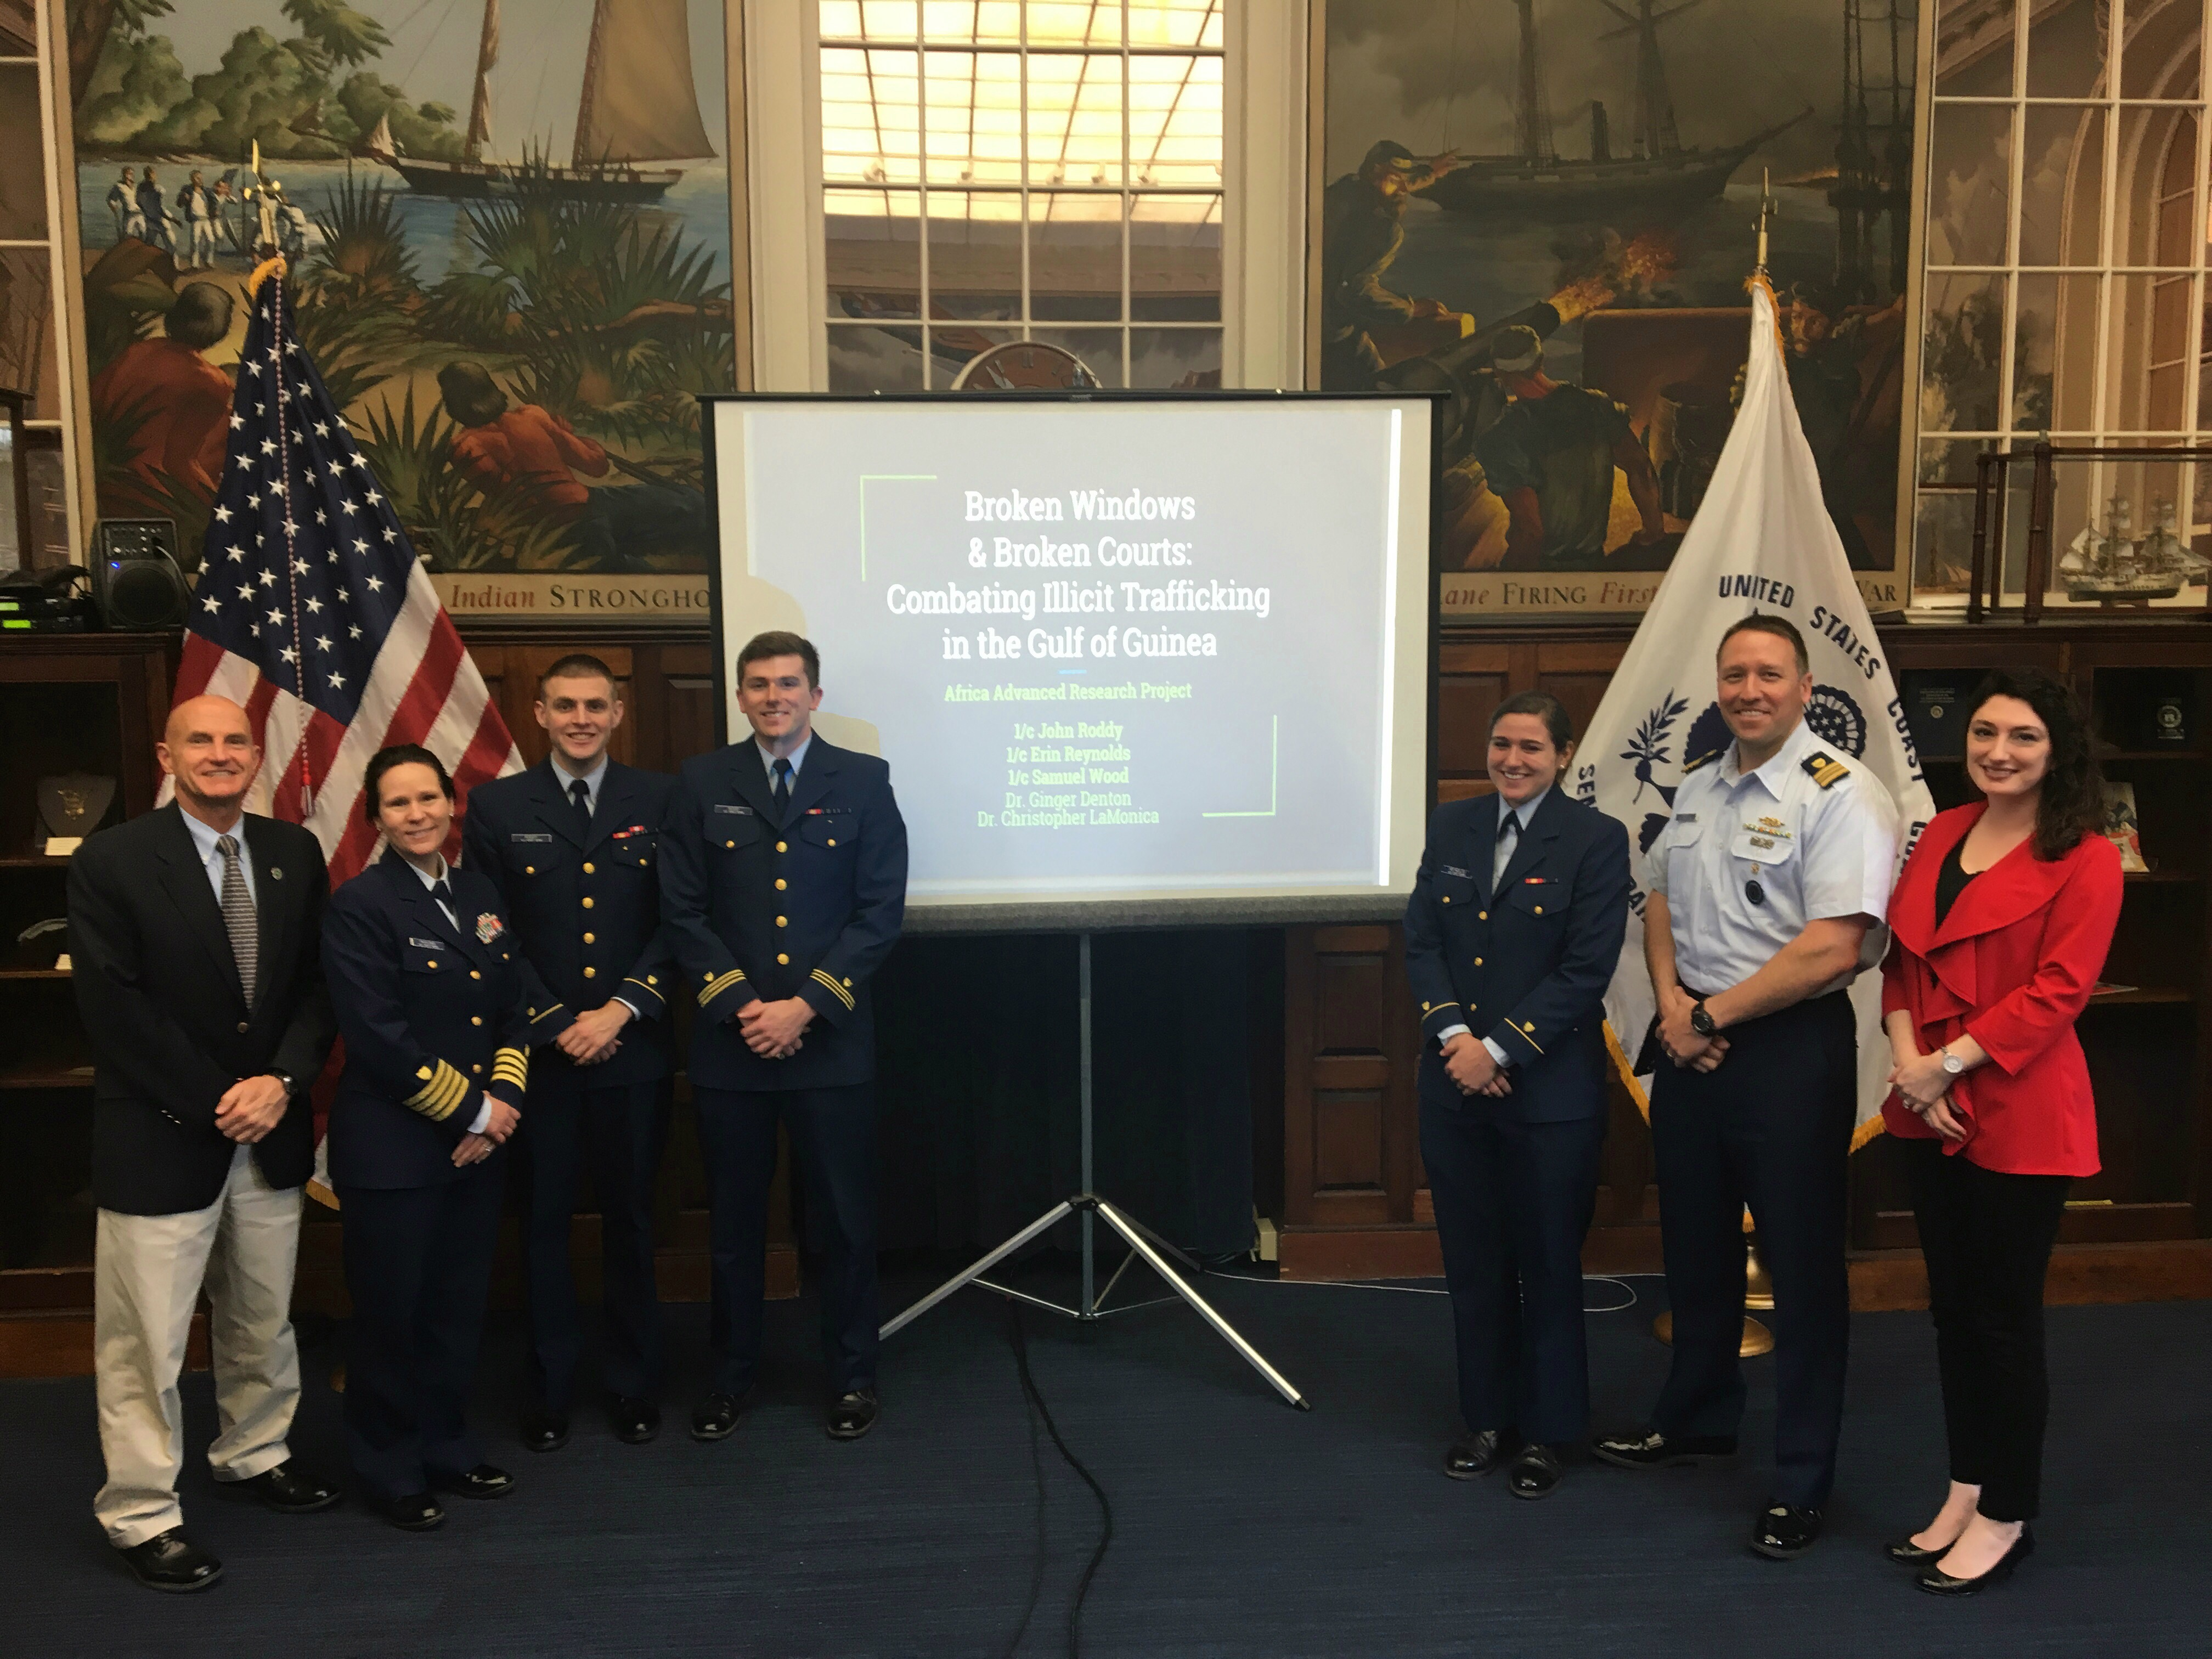 Brian Lisko, U.S. Africa Command Maritime Programs, Capt. Brigid Pavilonis, Chair of the U.S. Coast Guard Academy Department of Humanities, 1st Class Cadet John Roddy, 1st Class Cadet Samuel Wood, 1st Class Cadet Erin Reynolds, Lt. Cmdr. Todd Behney, U.S. Africa Command Maritime Programs, and Dr. Ginger Denton, research team advisor, post for a photo during the U.S. Coast Guard Academy Research Symposium March 27, 2017 at the U.S. Coast Guard Academy